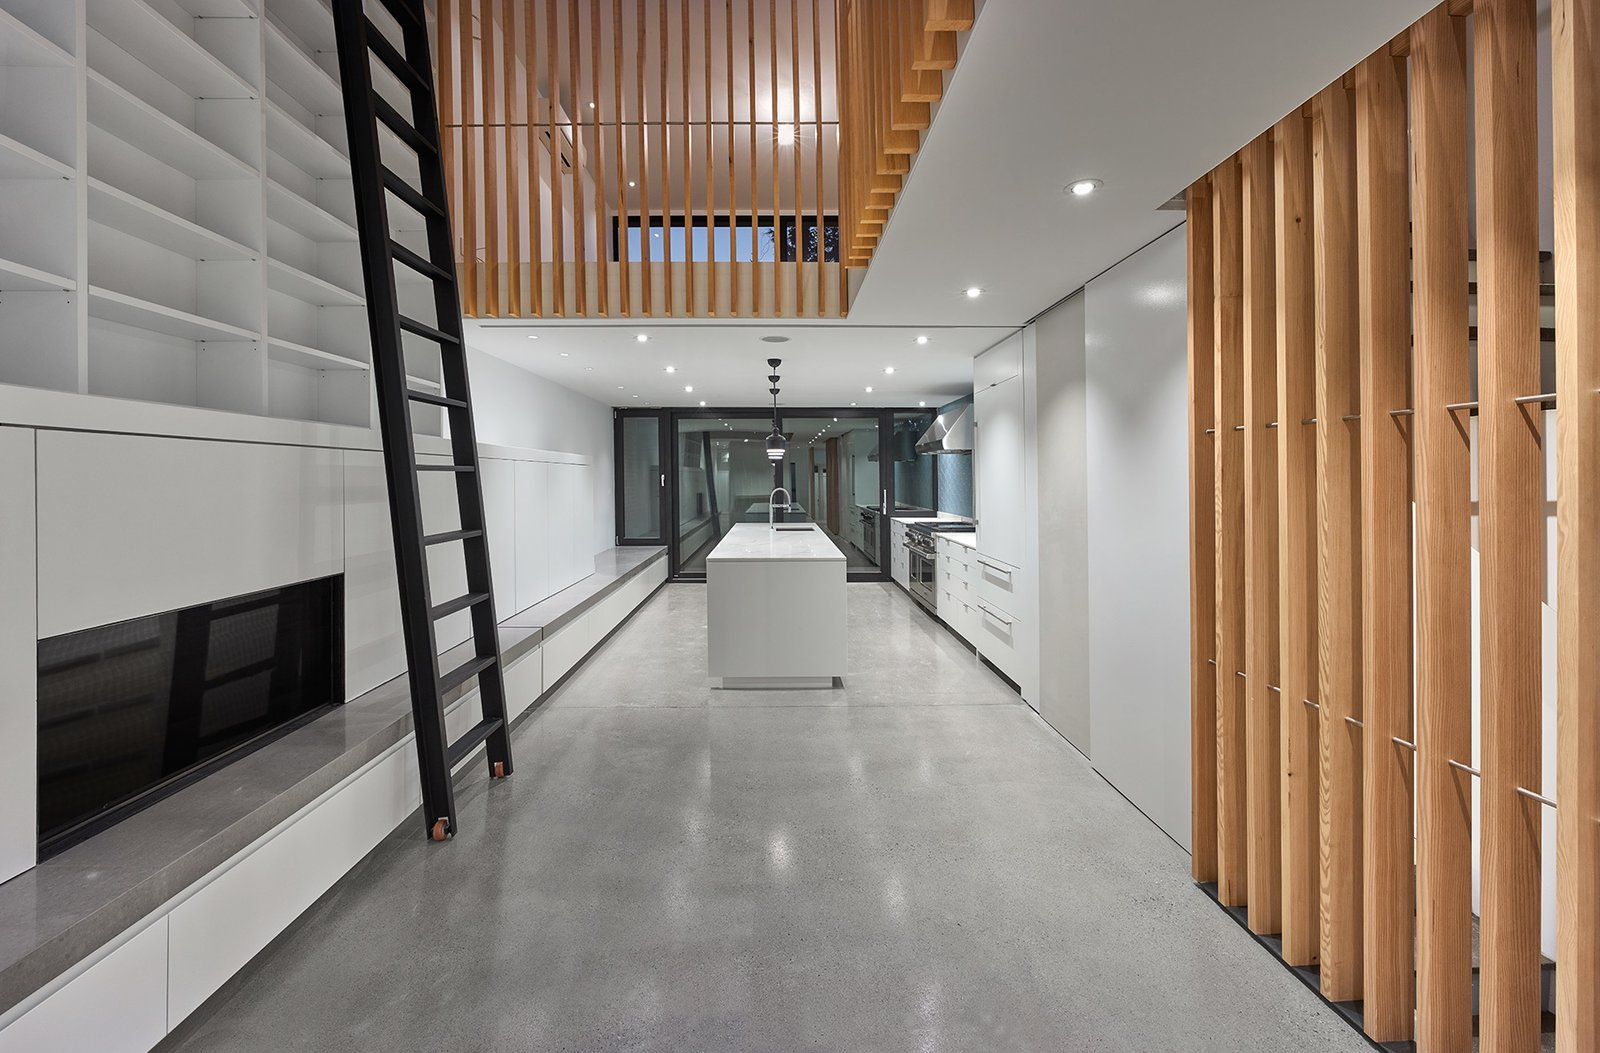 Photo 1 of 5 in Atrium House by RobitailleCurtis